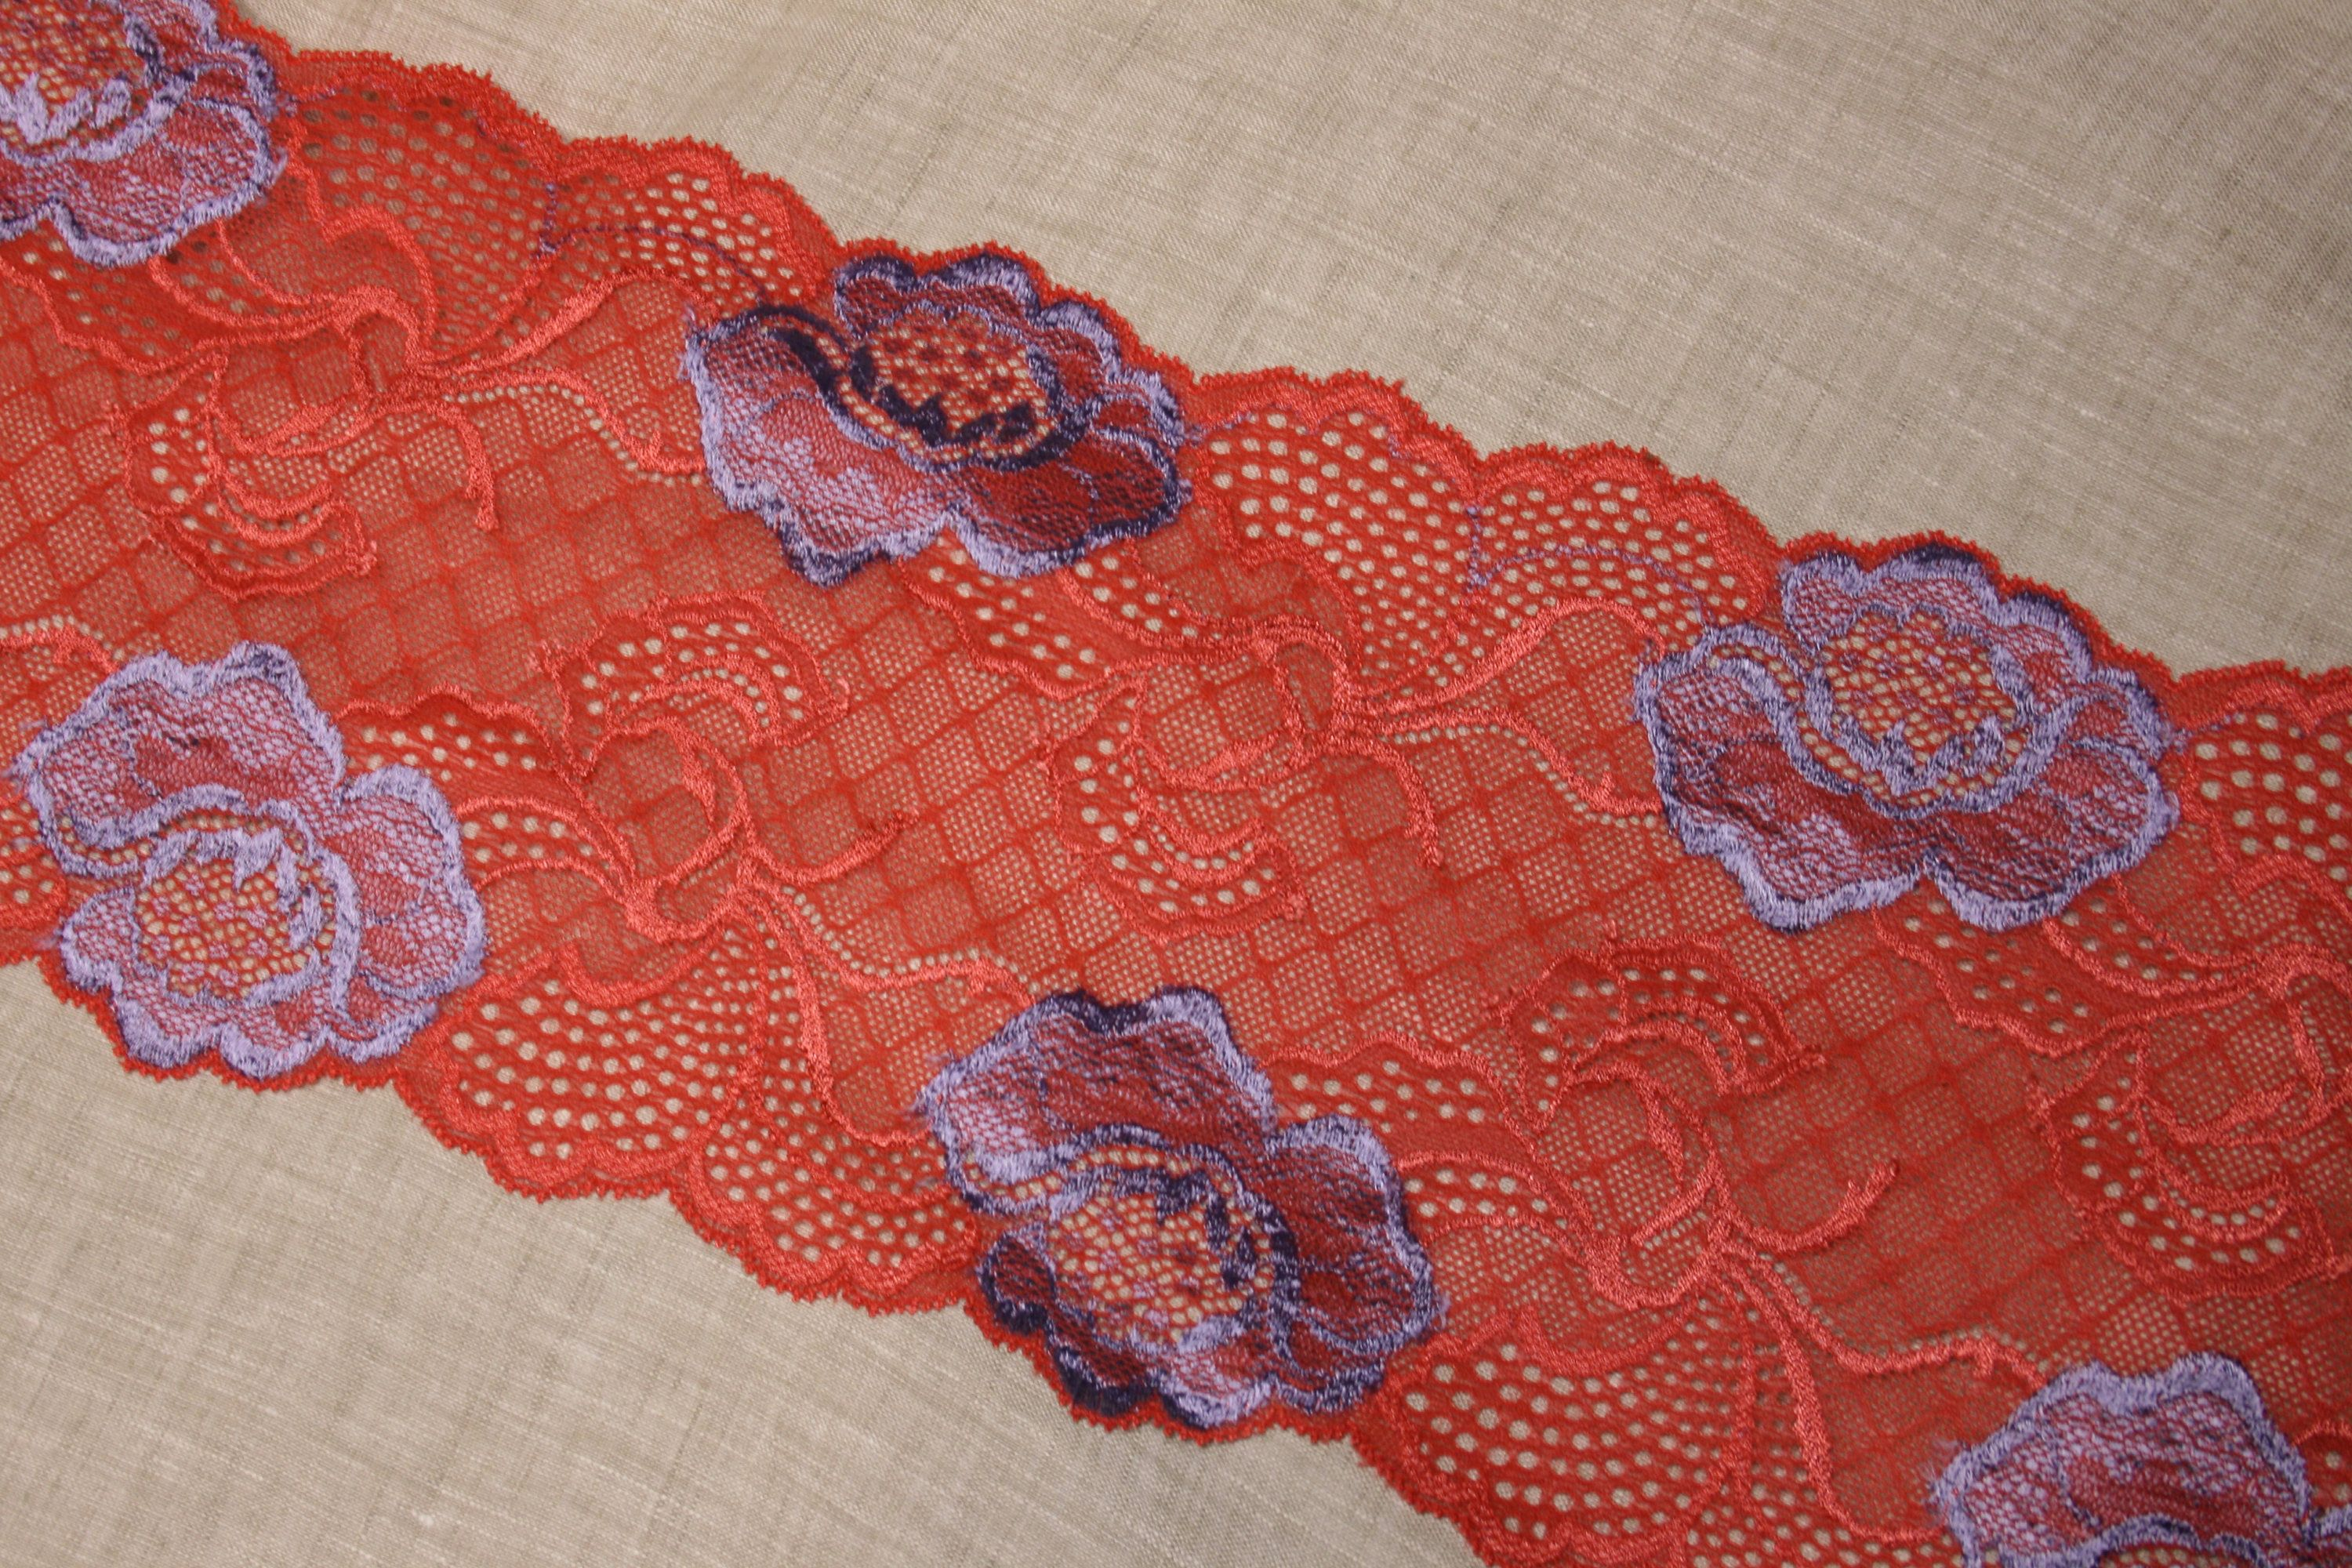 ee83b0086a Red Lace Trim 6.1